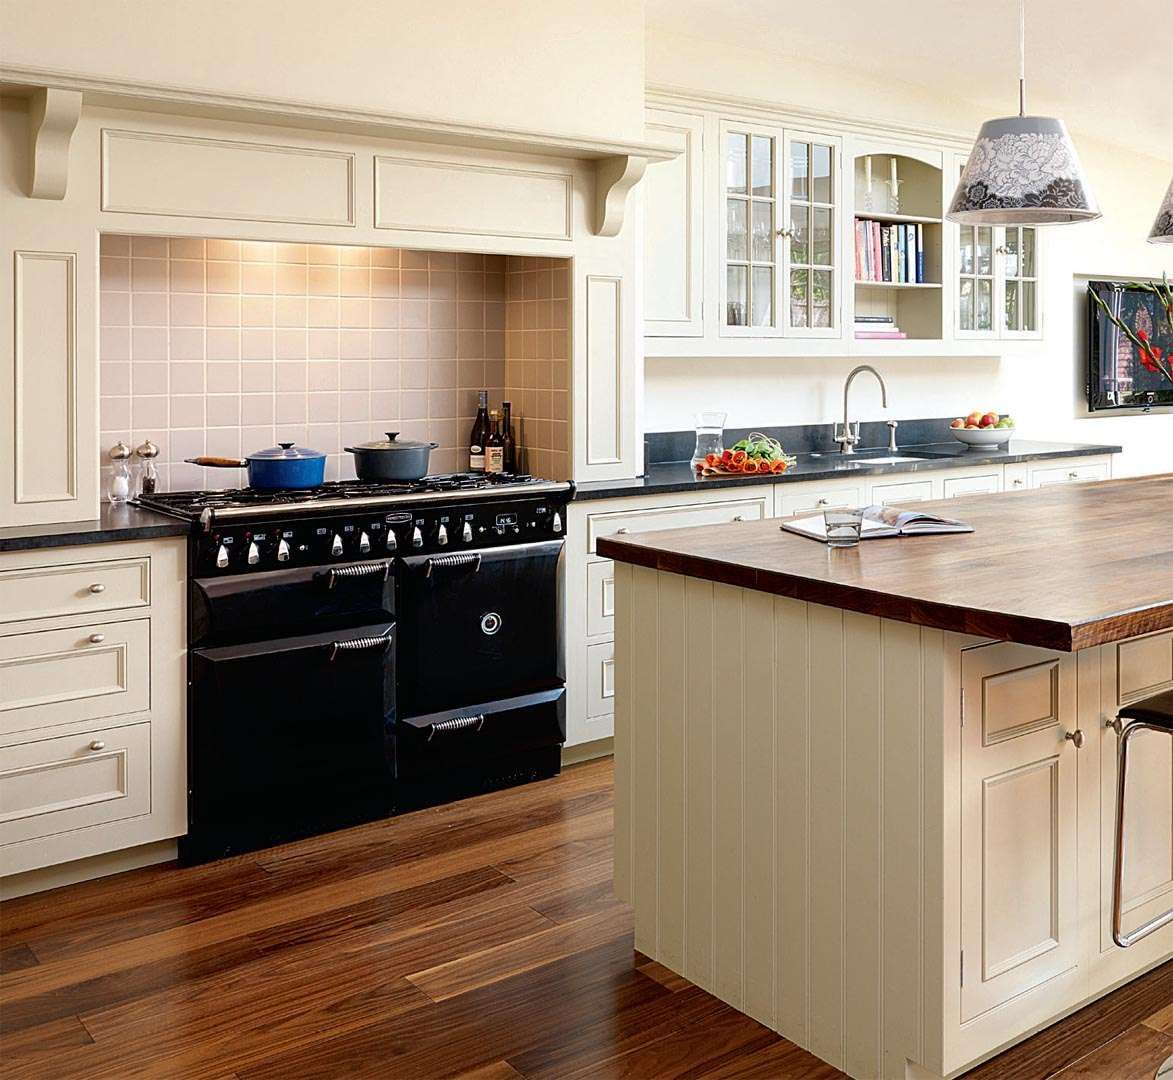 victorian style kitchens uk Google Search (With images